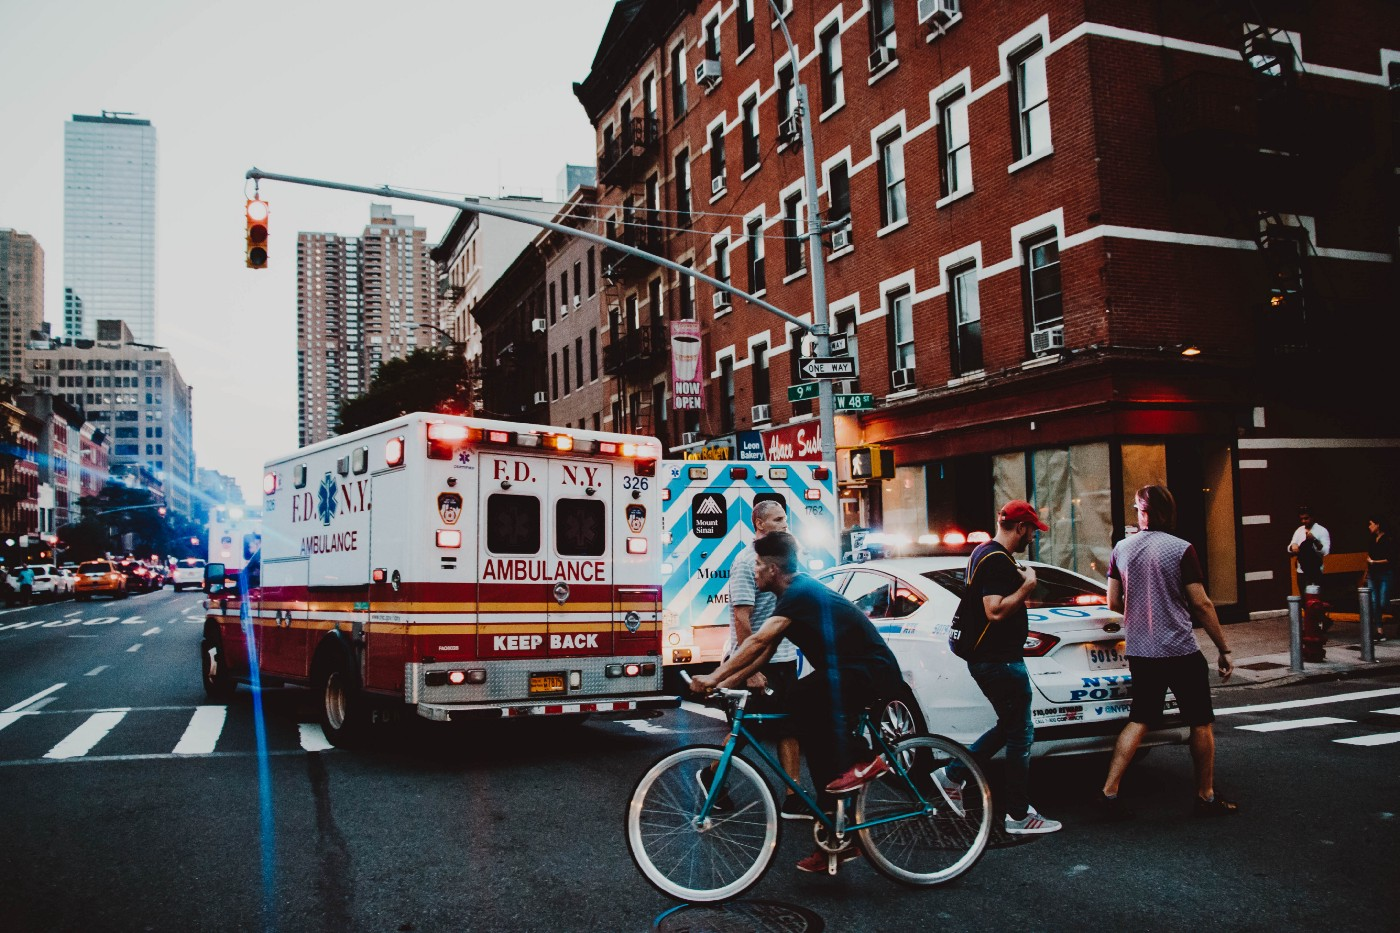 An ambulance turns through a New York City intersection.